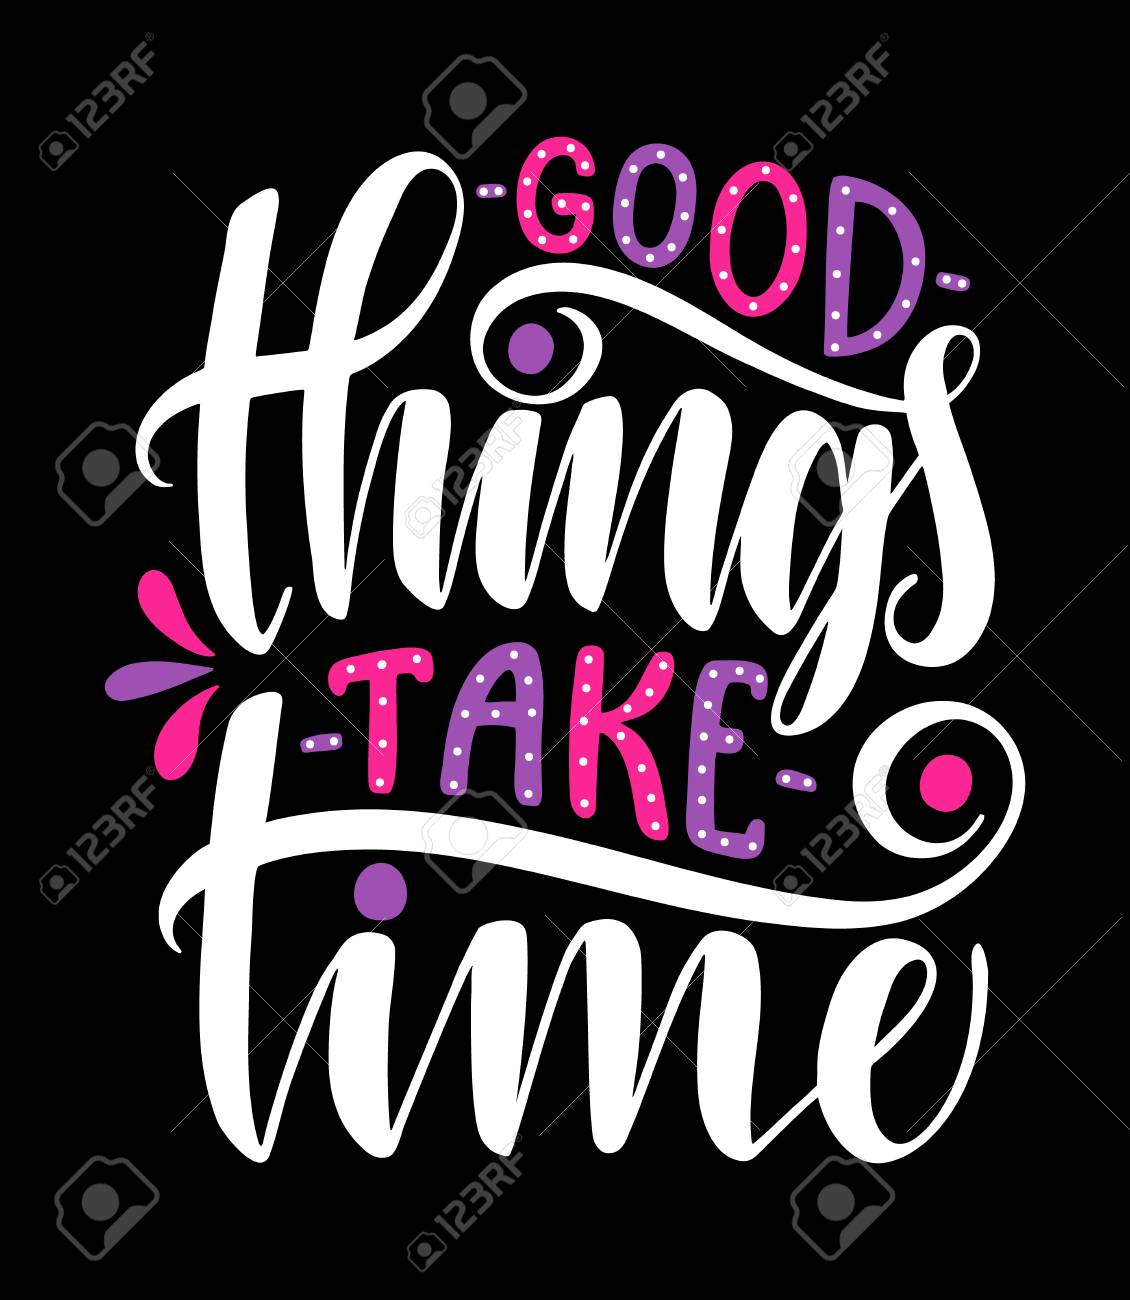 Good Things Take Timeinspirational Quotehand Drawn Poster With